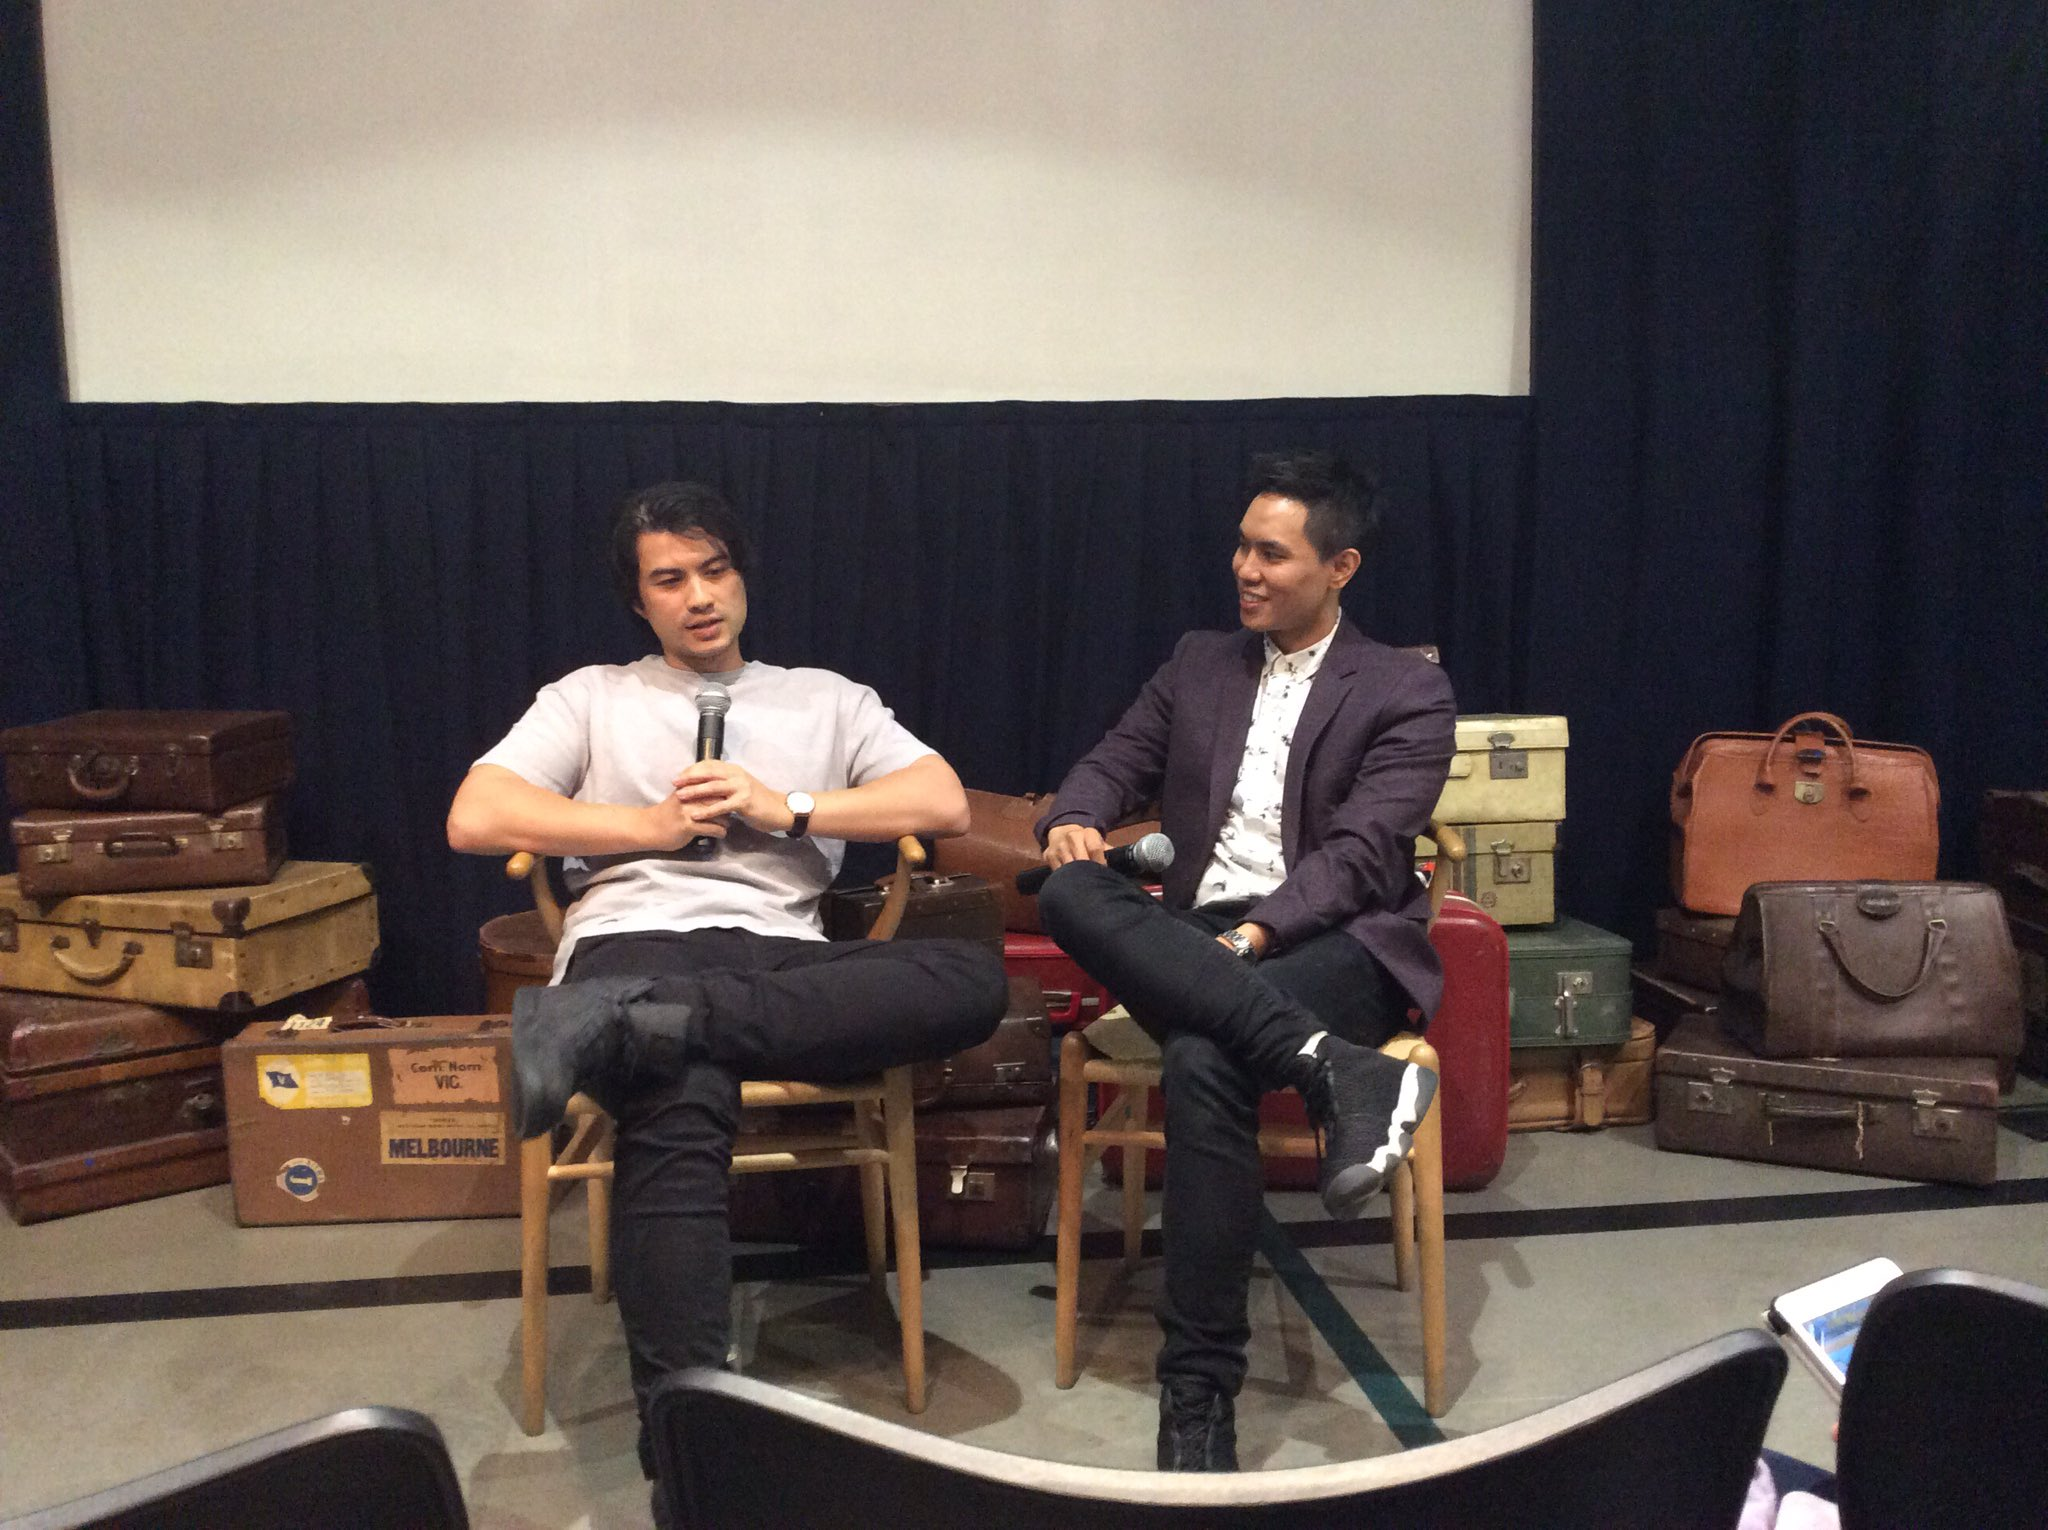 Whitewashing ,stereotypes & working in the media in Aus. @Max_was_here @andy_trieu @immigration_mv this afternoon https://t.co/k7OUGu4OtH